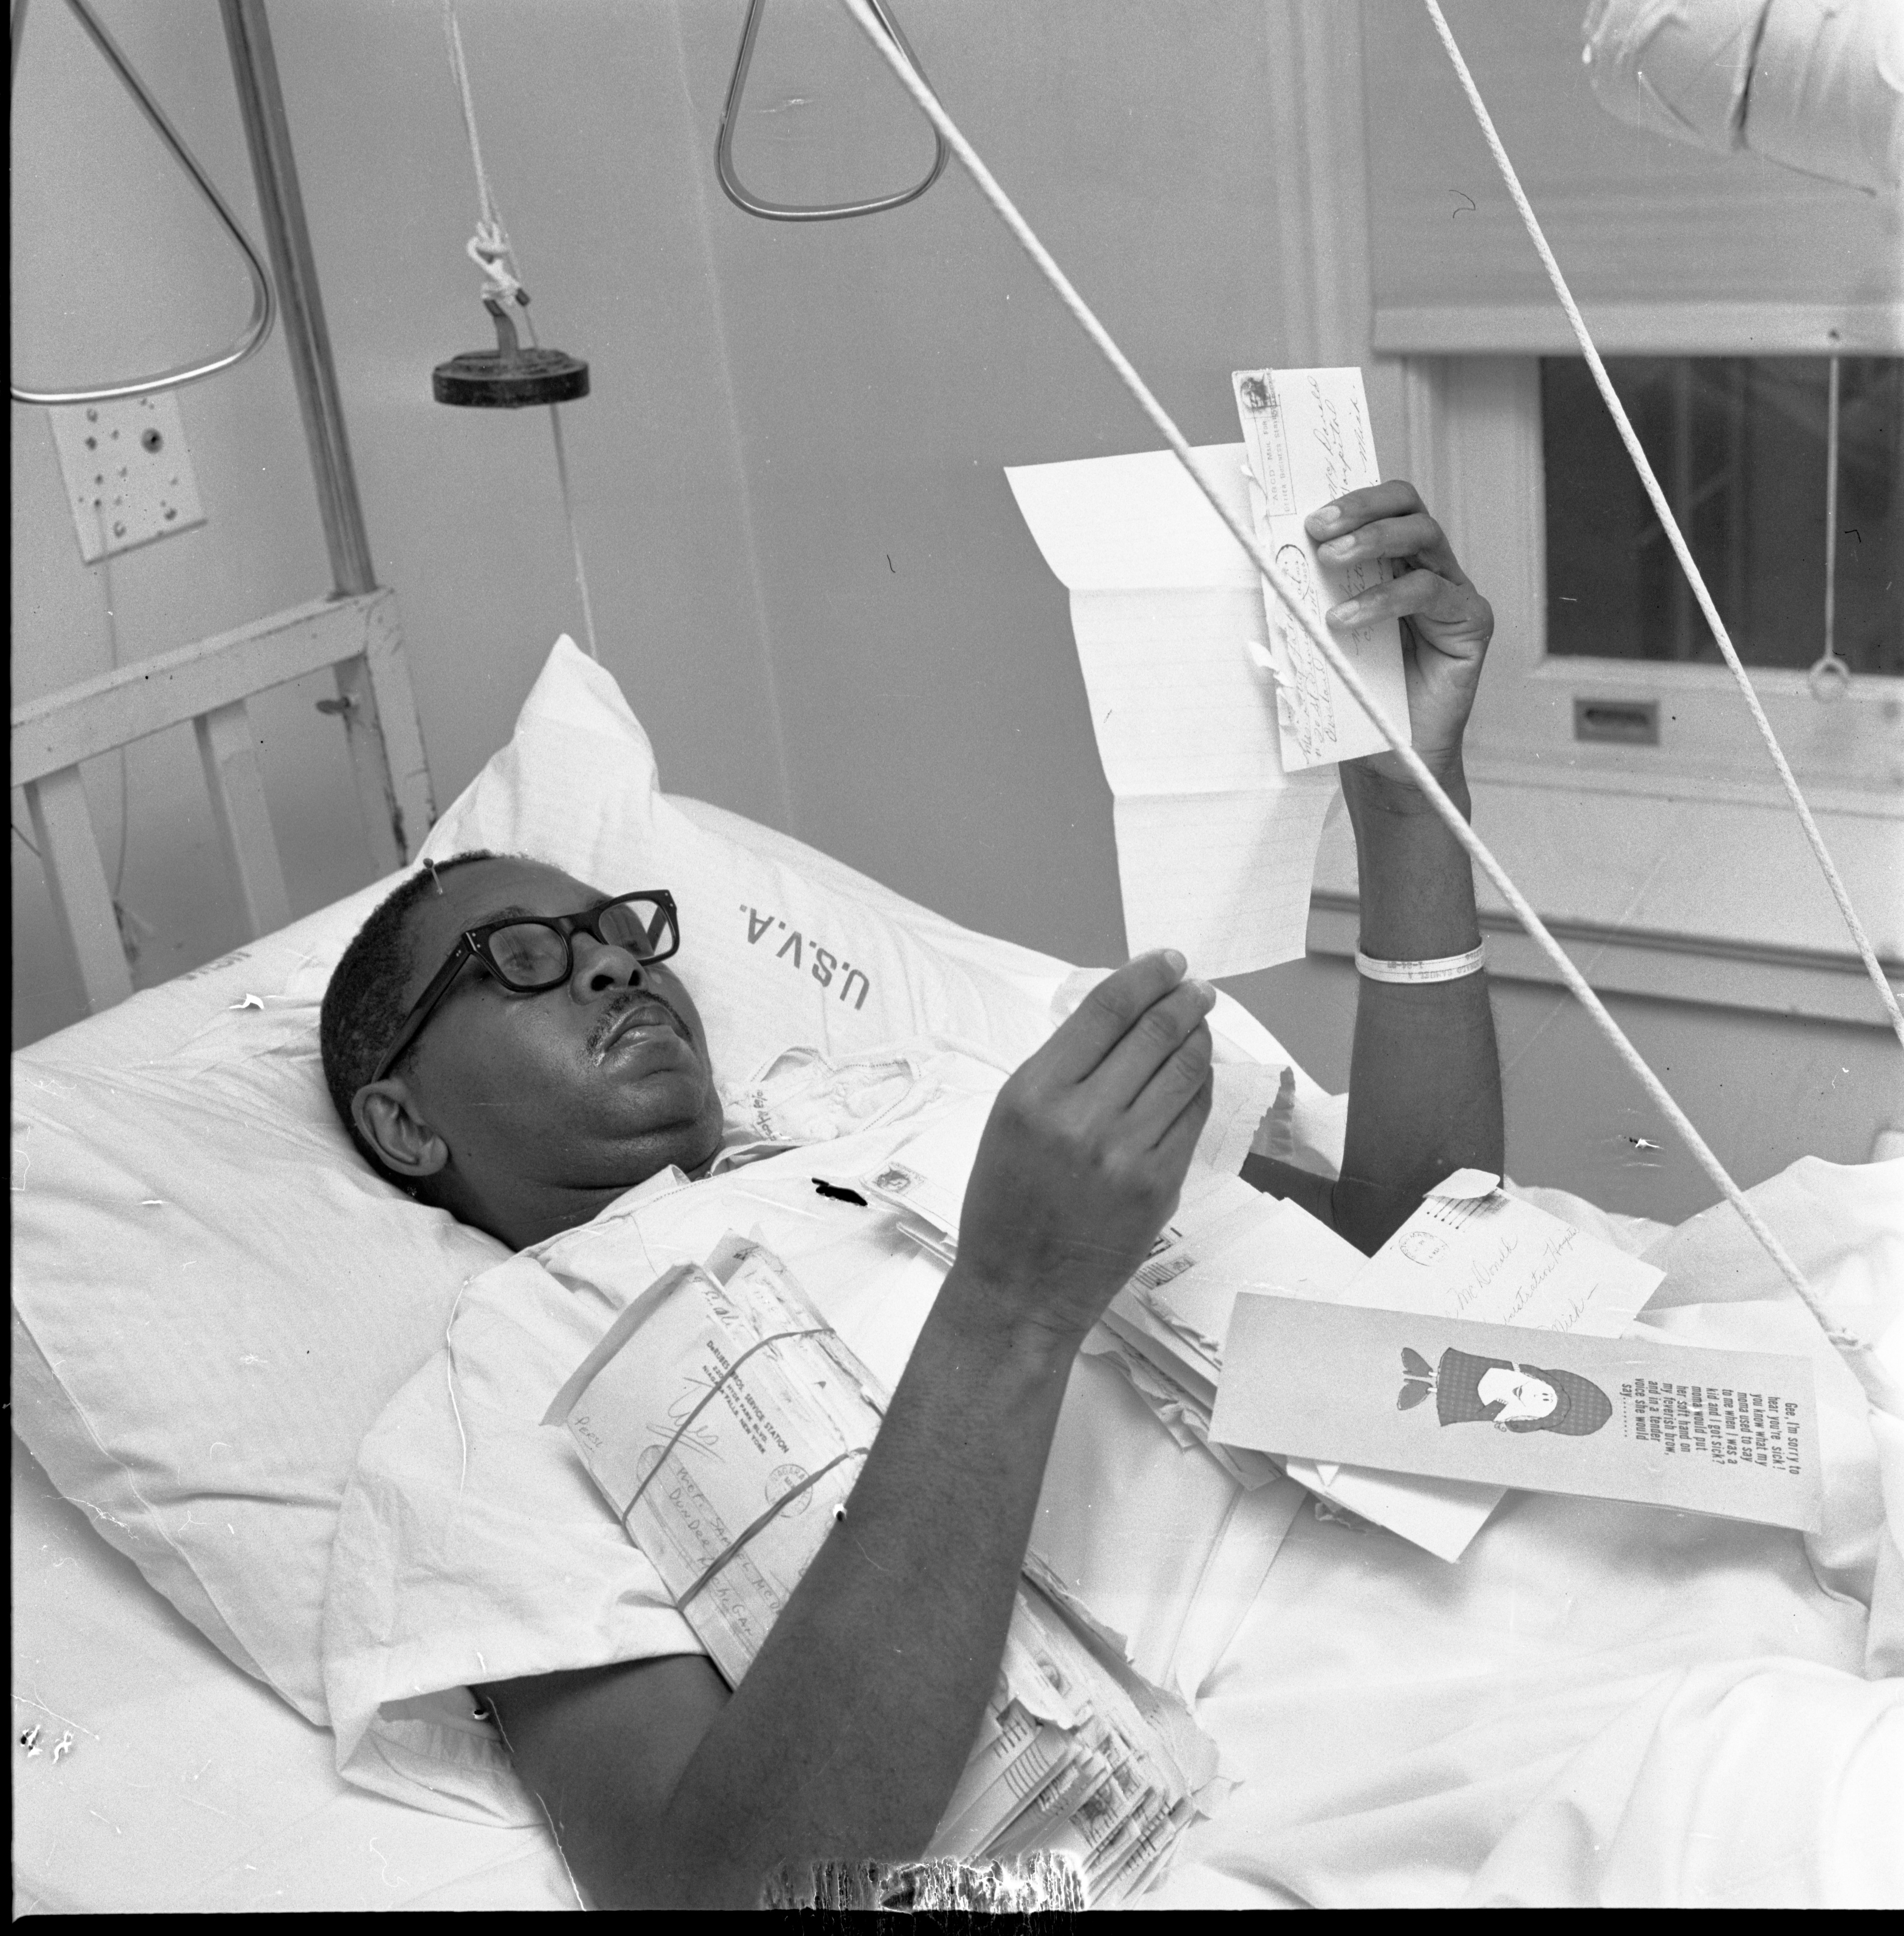 Sam McDonald Reads His Mail While In Veterans Hospital, March 1964 image